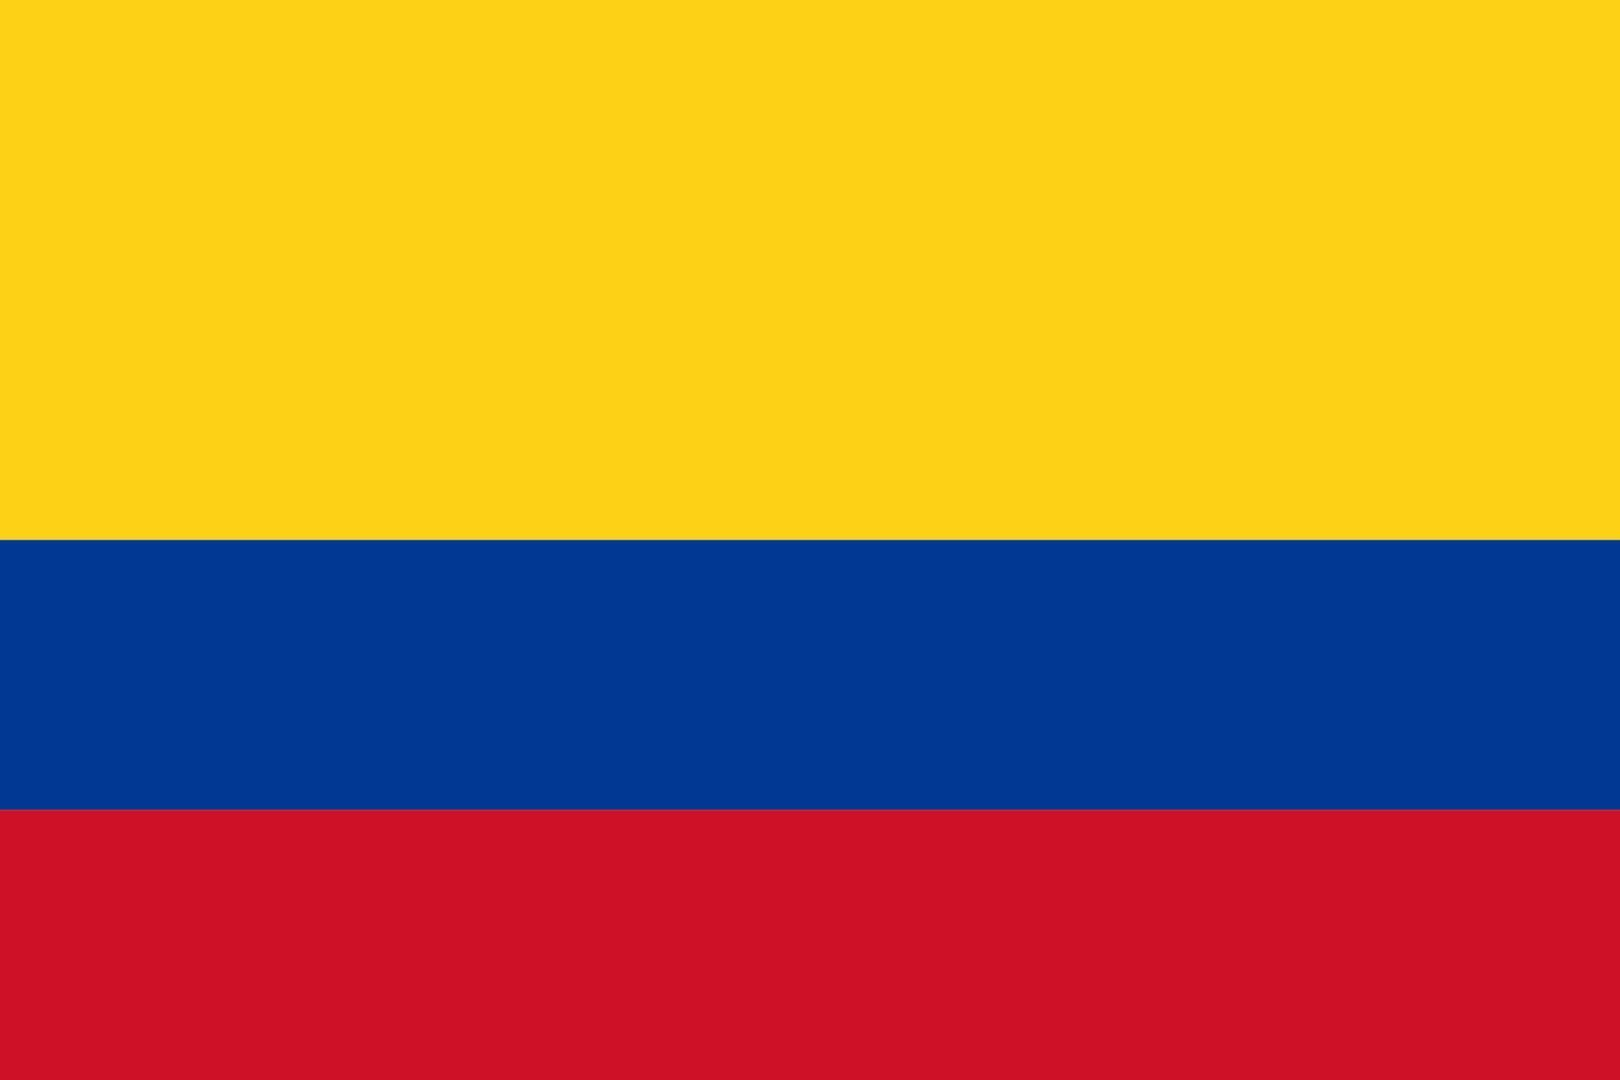 1620x1080 Flag of Colombia wallpaper   Flags wallpaper   Pinterest   Colombia ...